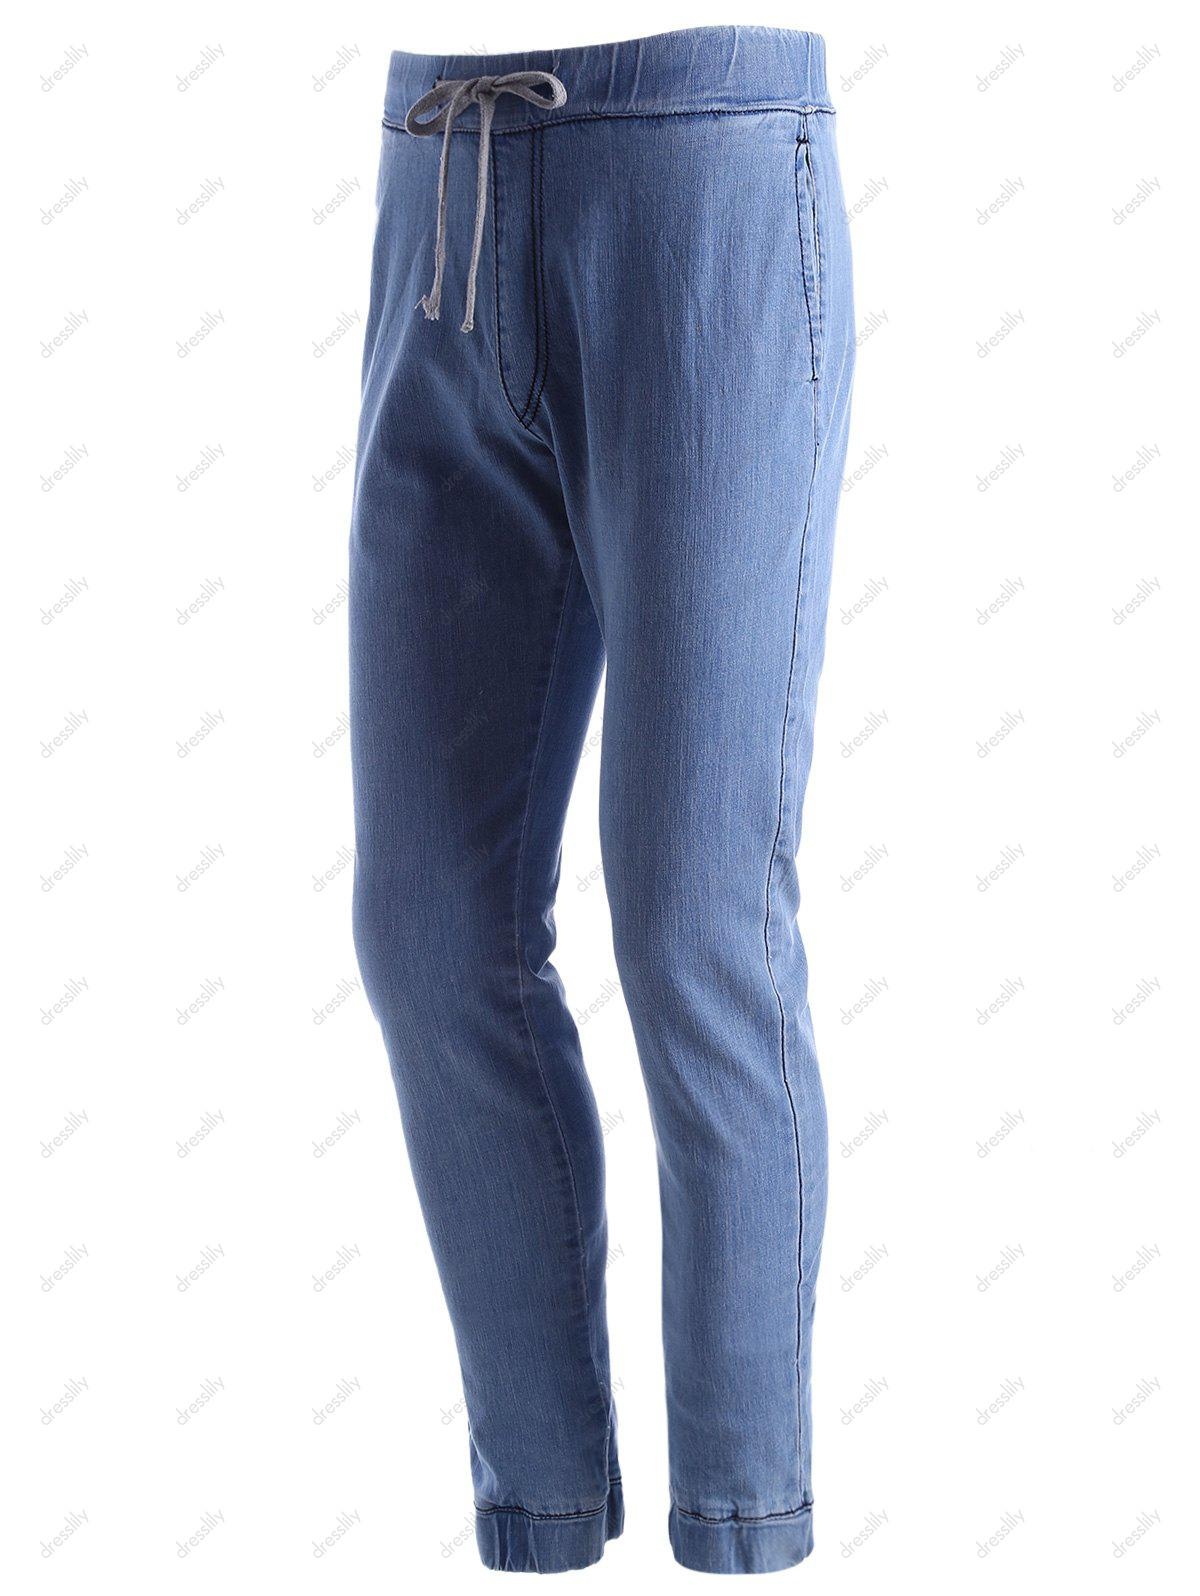 Stretchy Drawstring Jogger Jeans - LIGHT BLUE 32